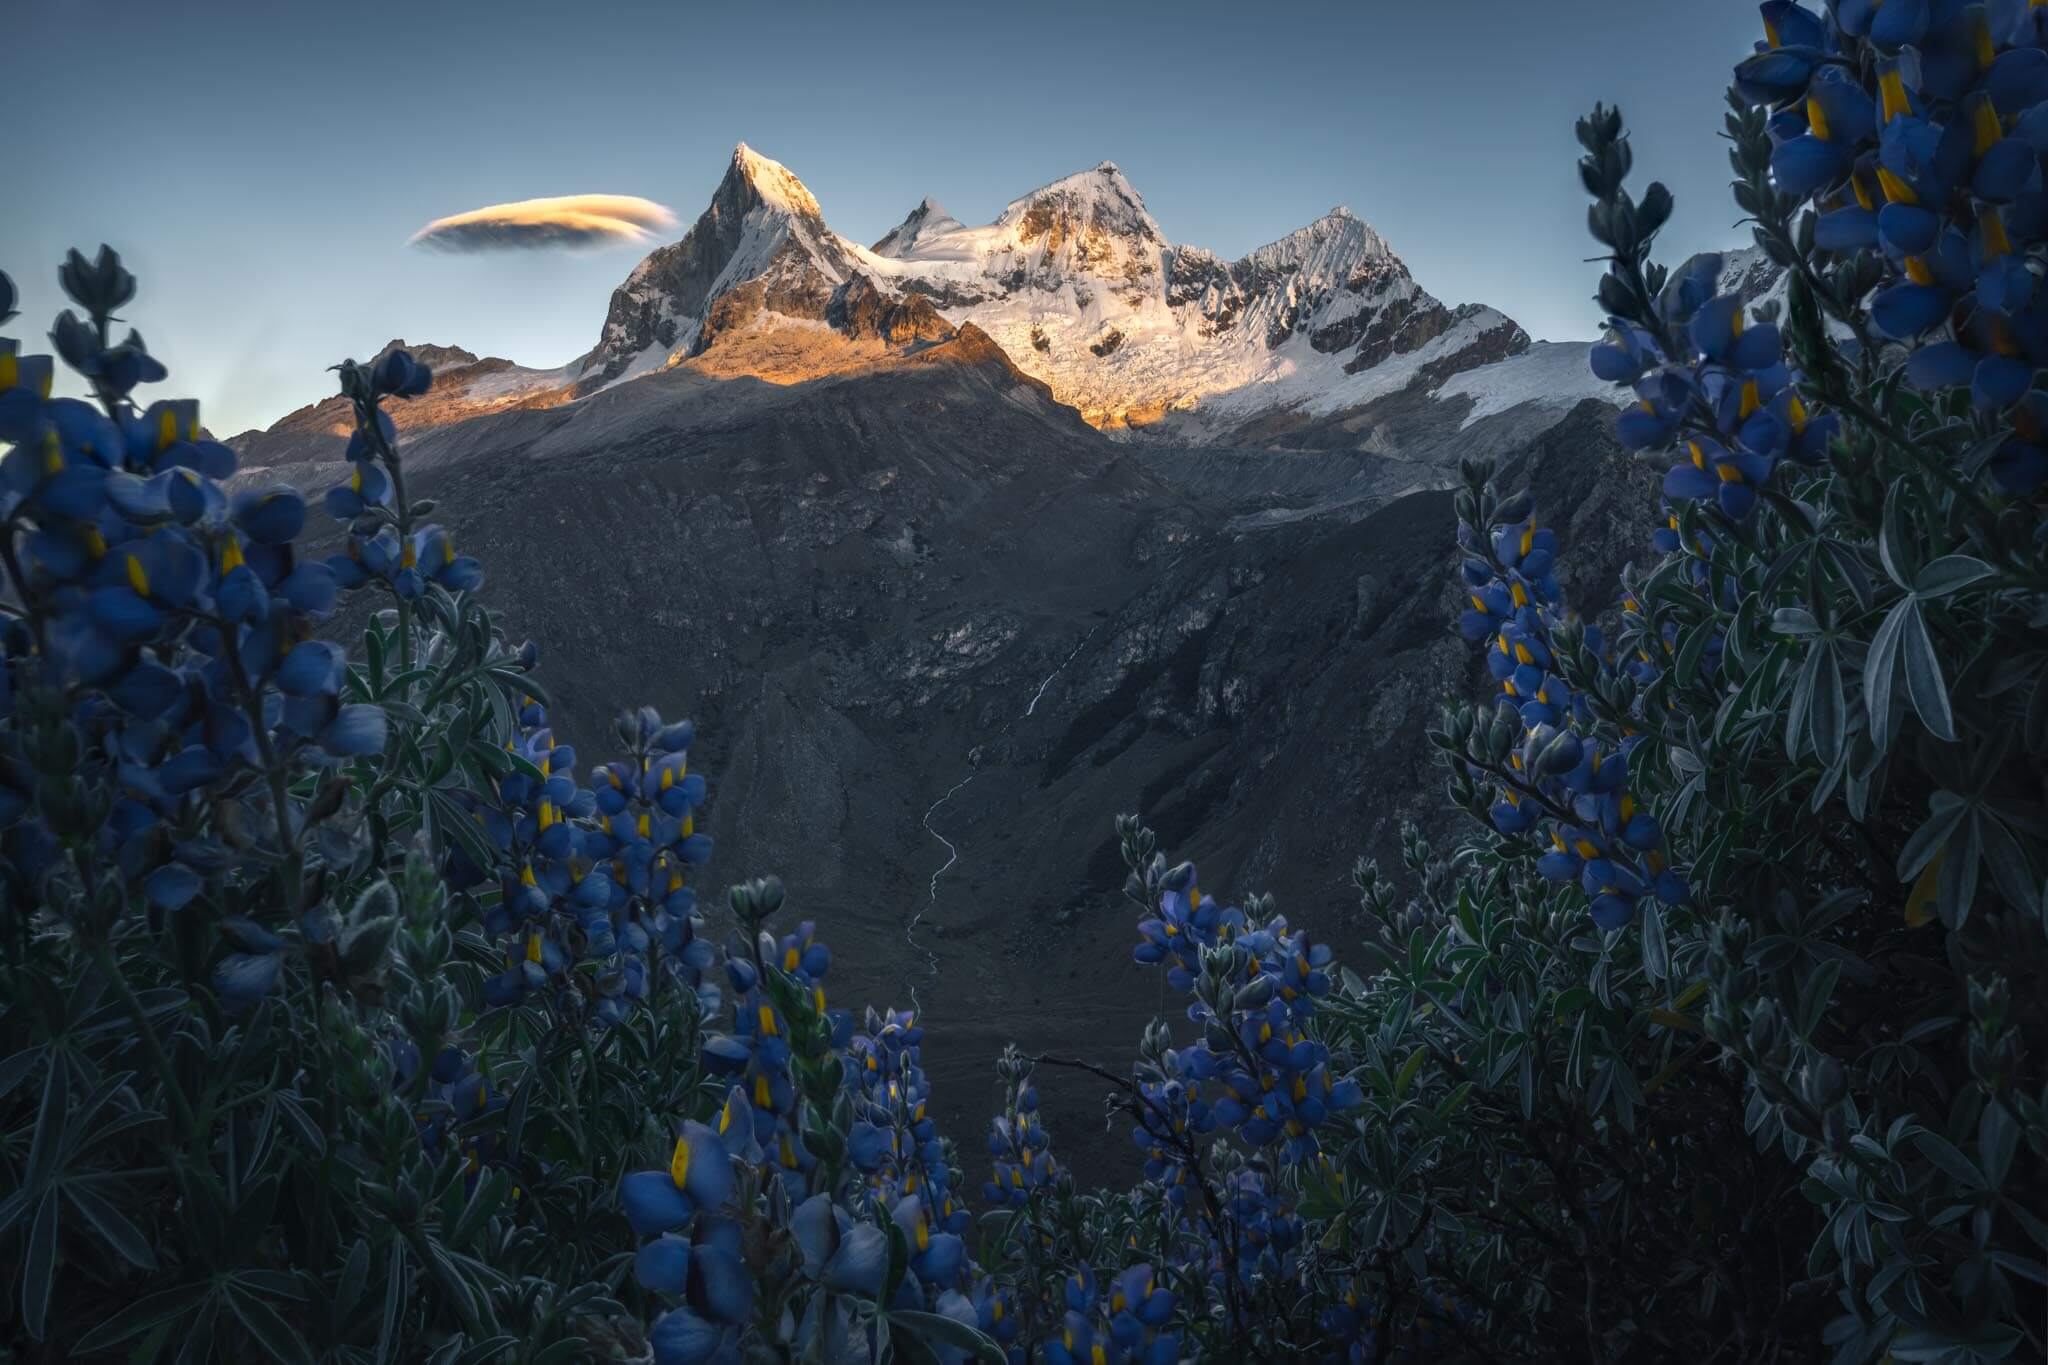 Marco Grassi Photography leading the Peru Photo Tour